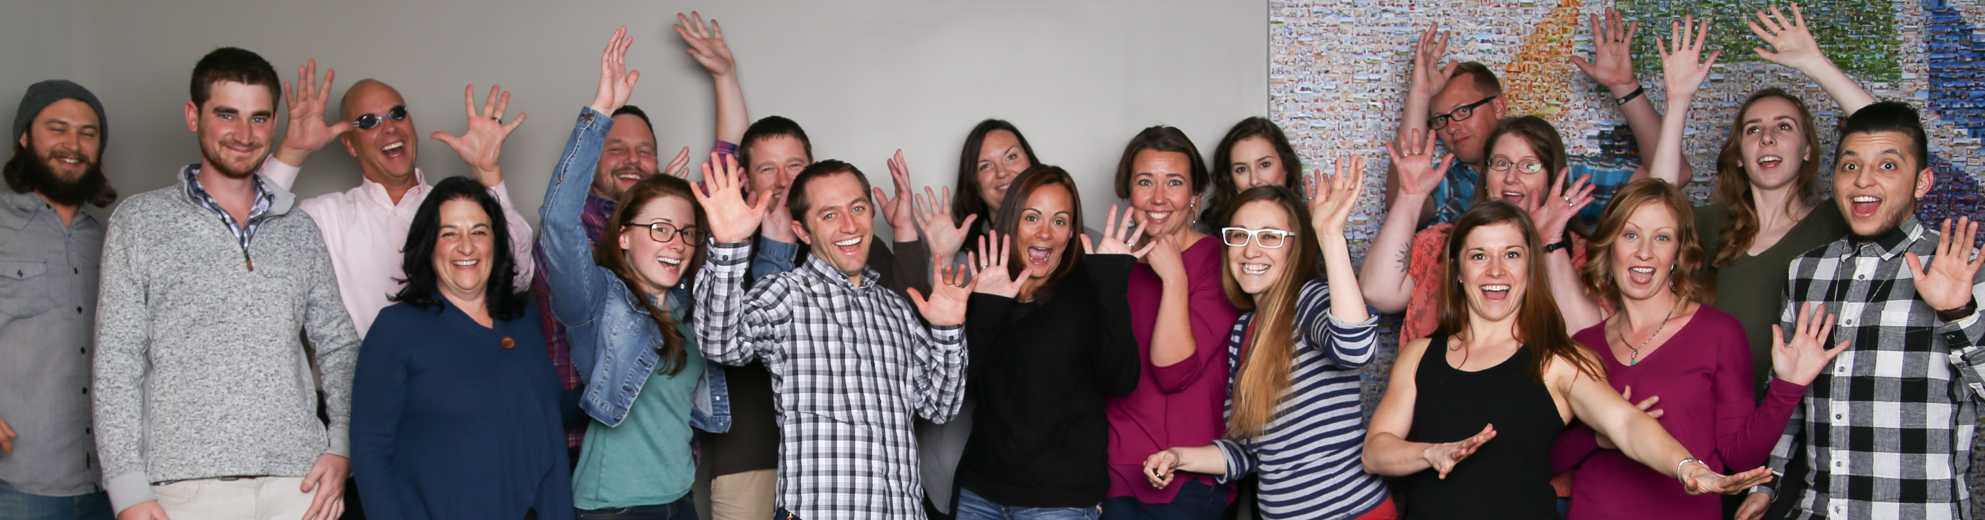 Virtuance Named #4 Best Place to Work in Denver! - Real